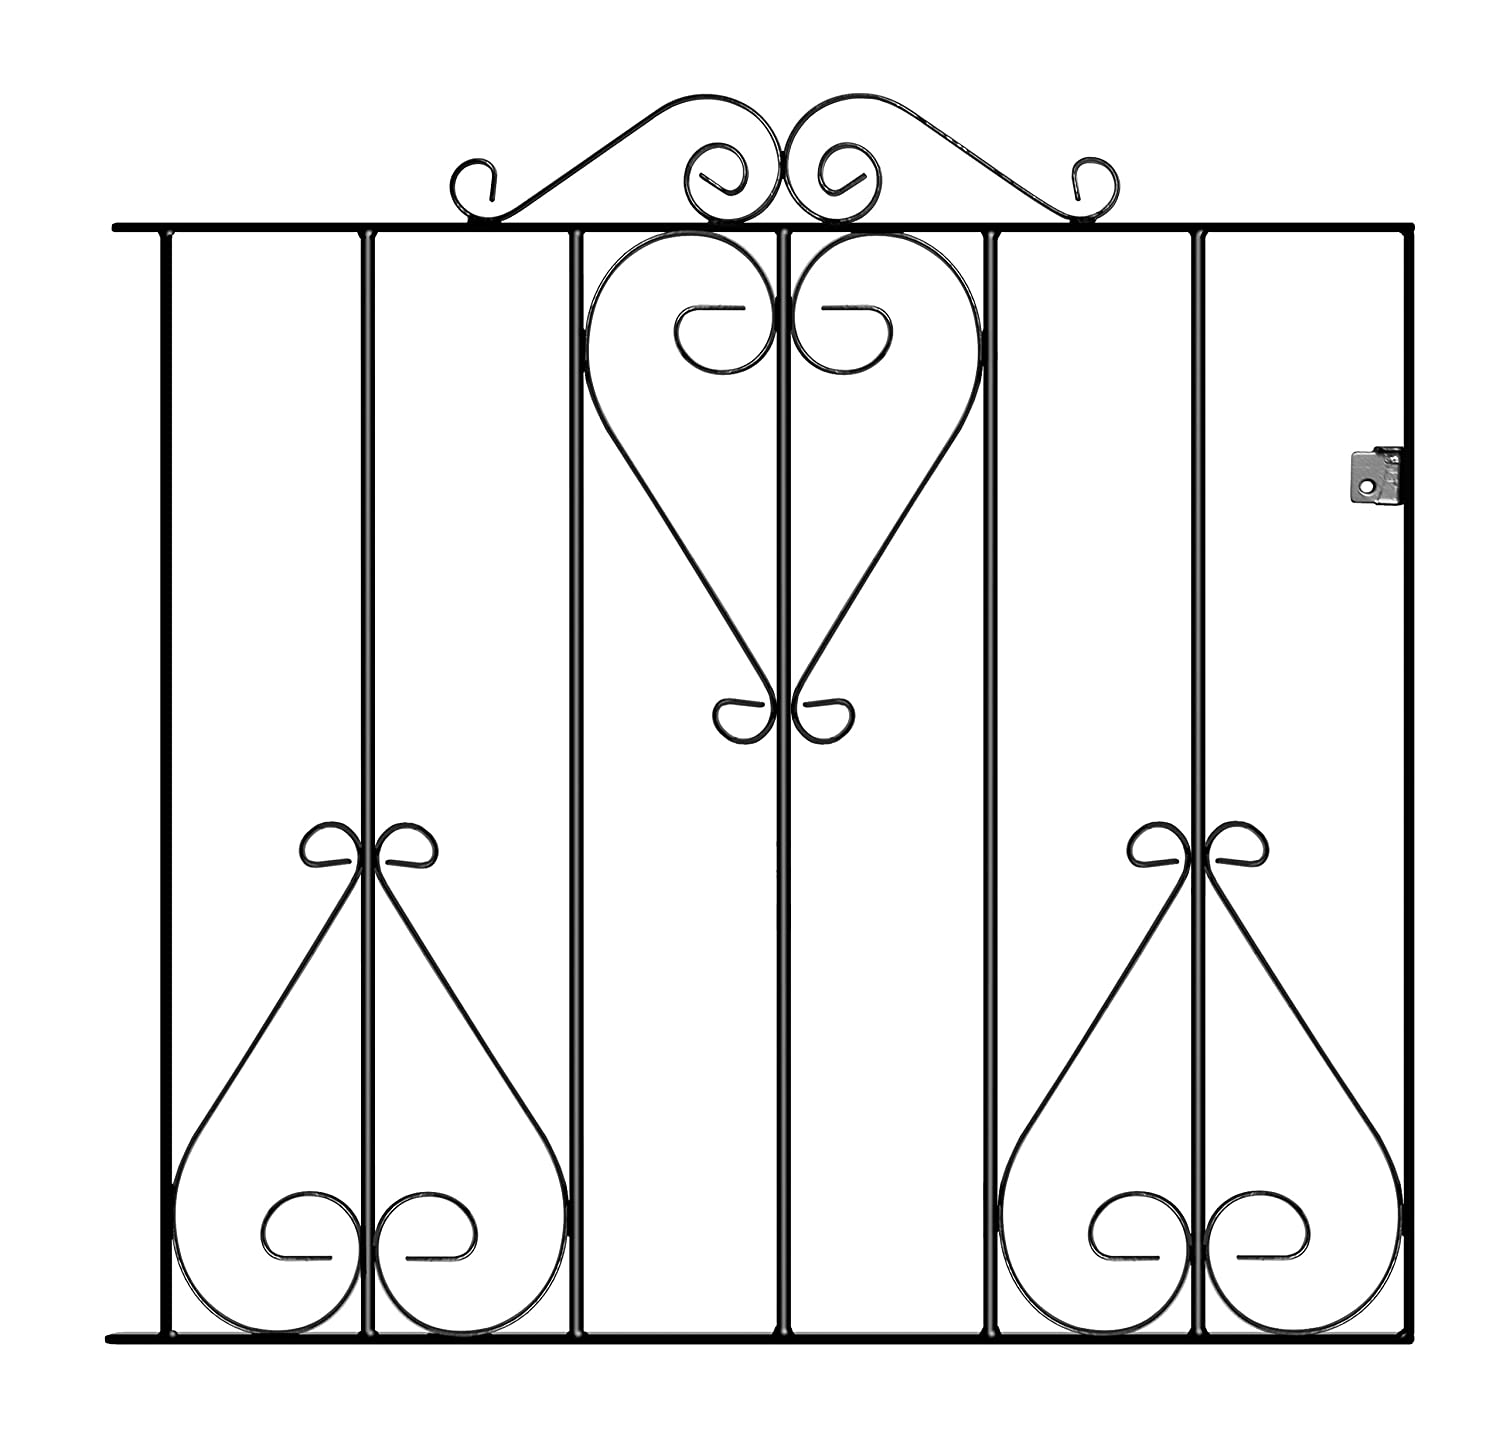 CLASSIC2 Metal Scroll Garden Gates 838mm GAP X 914mm H